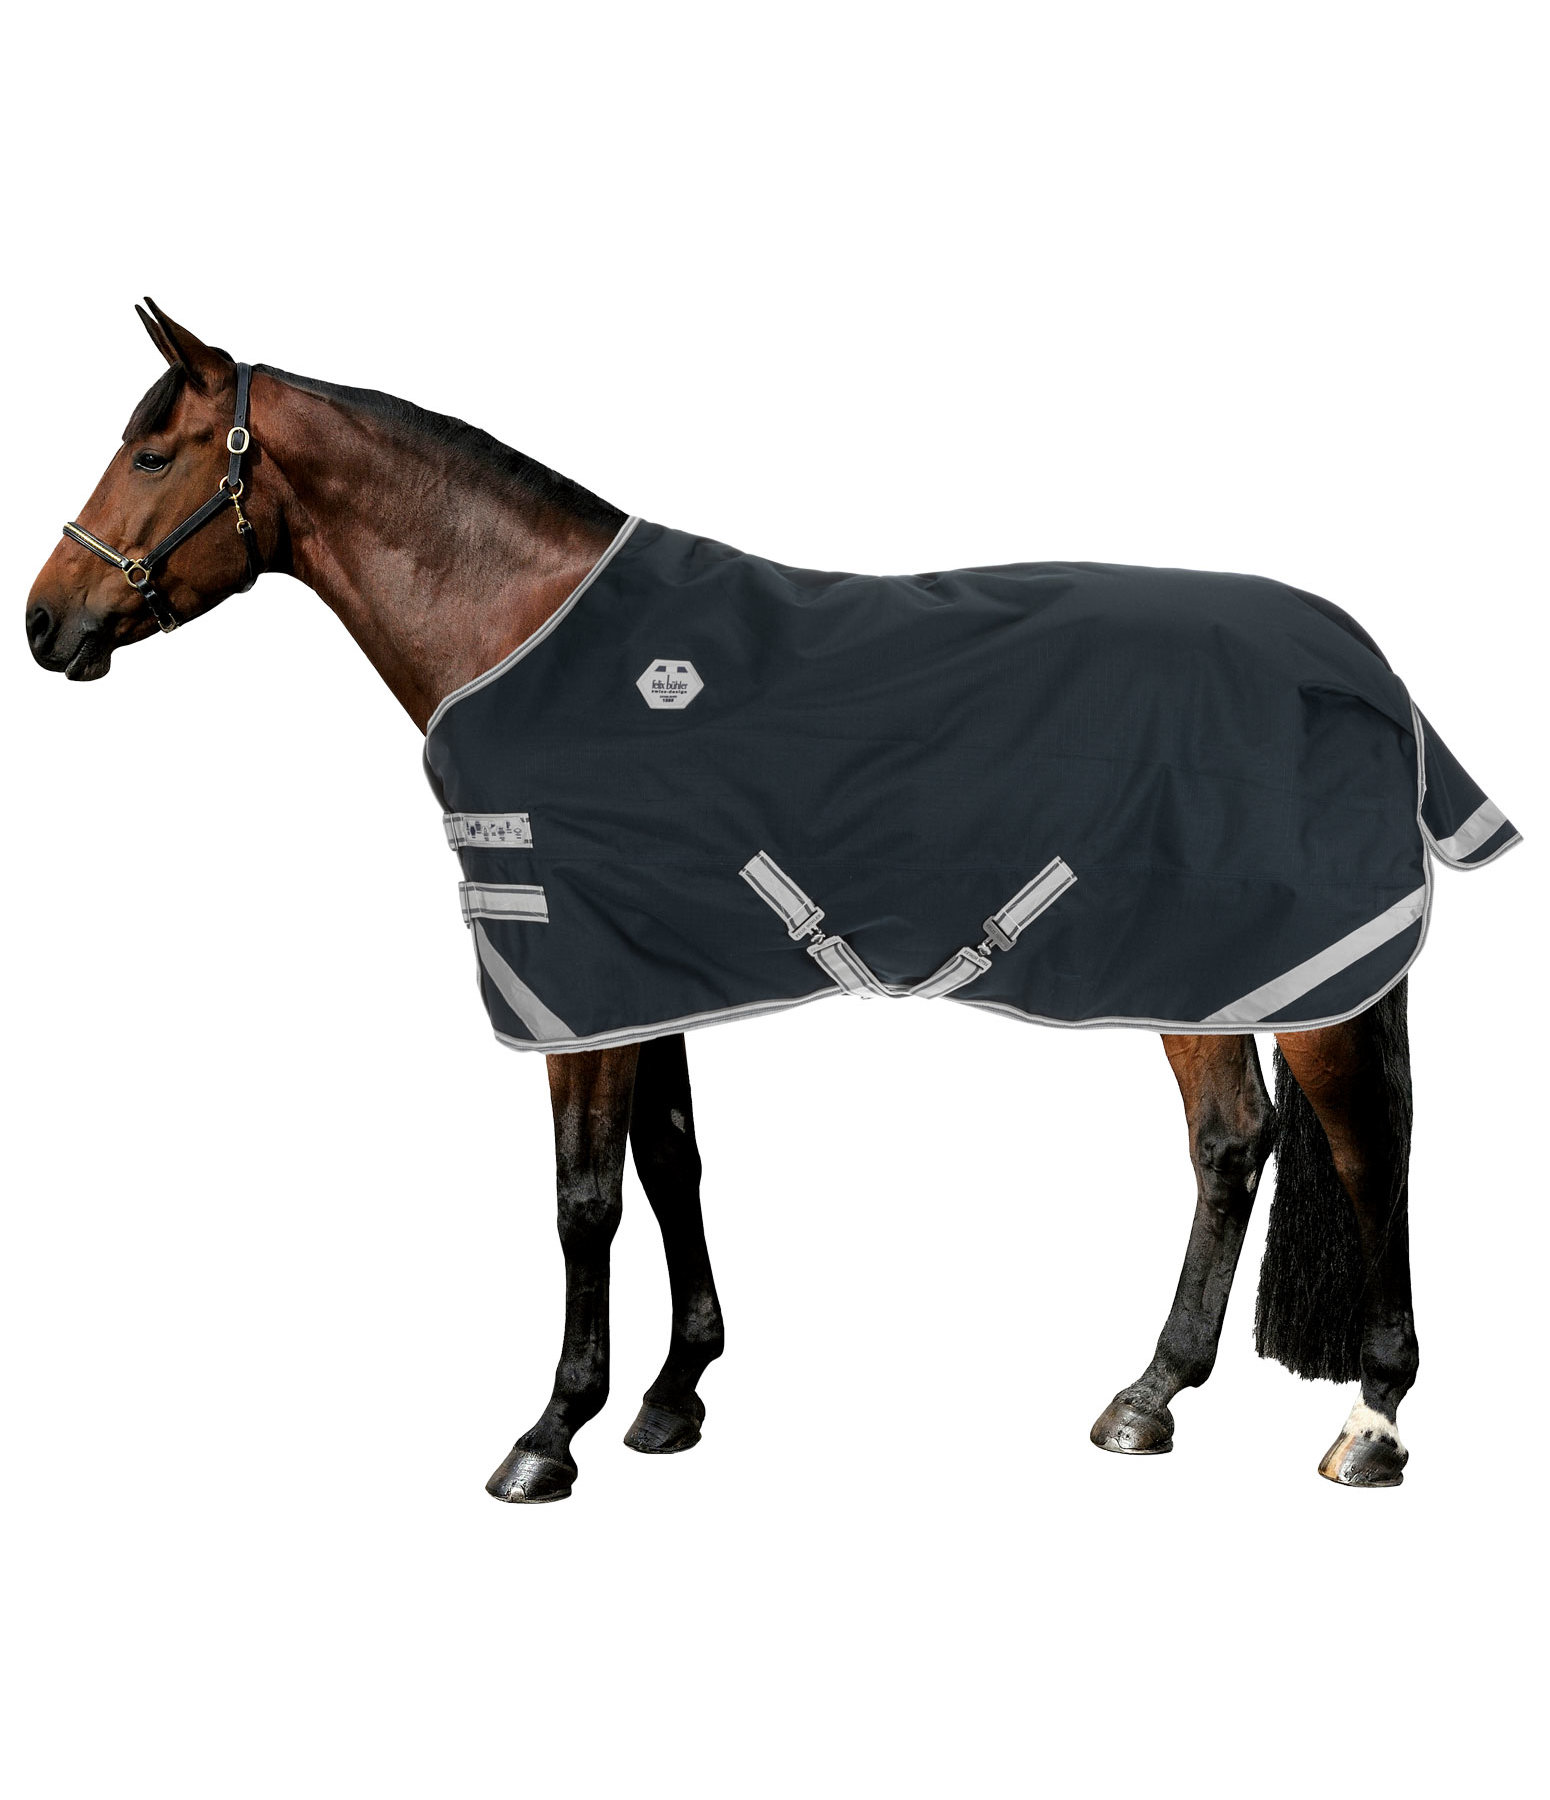 Regularneck Outdoordecke Paddock Reflective, 200 g